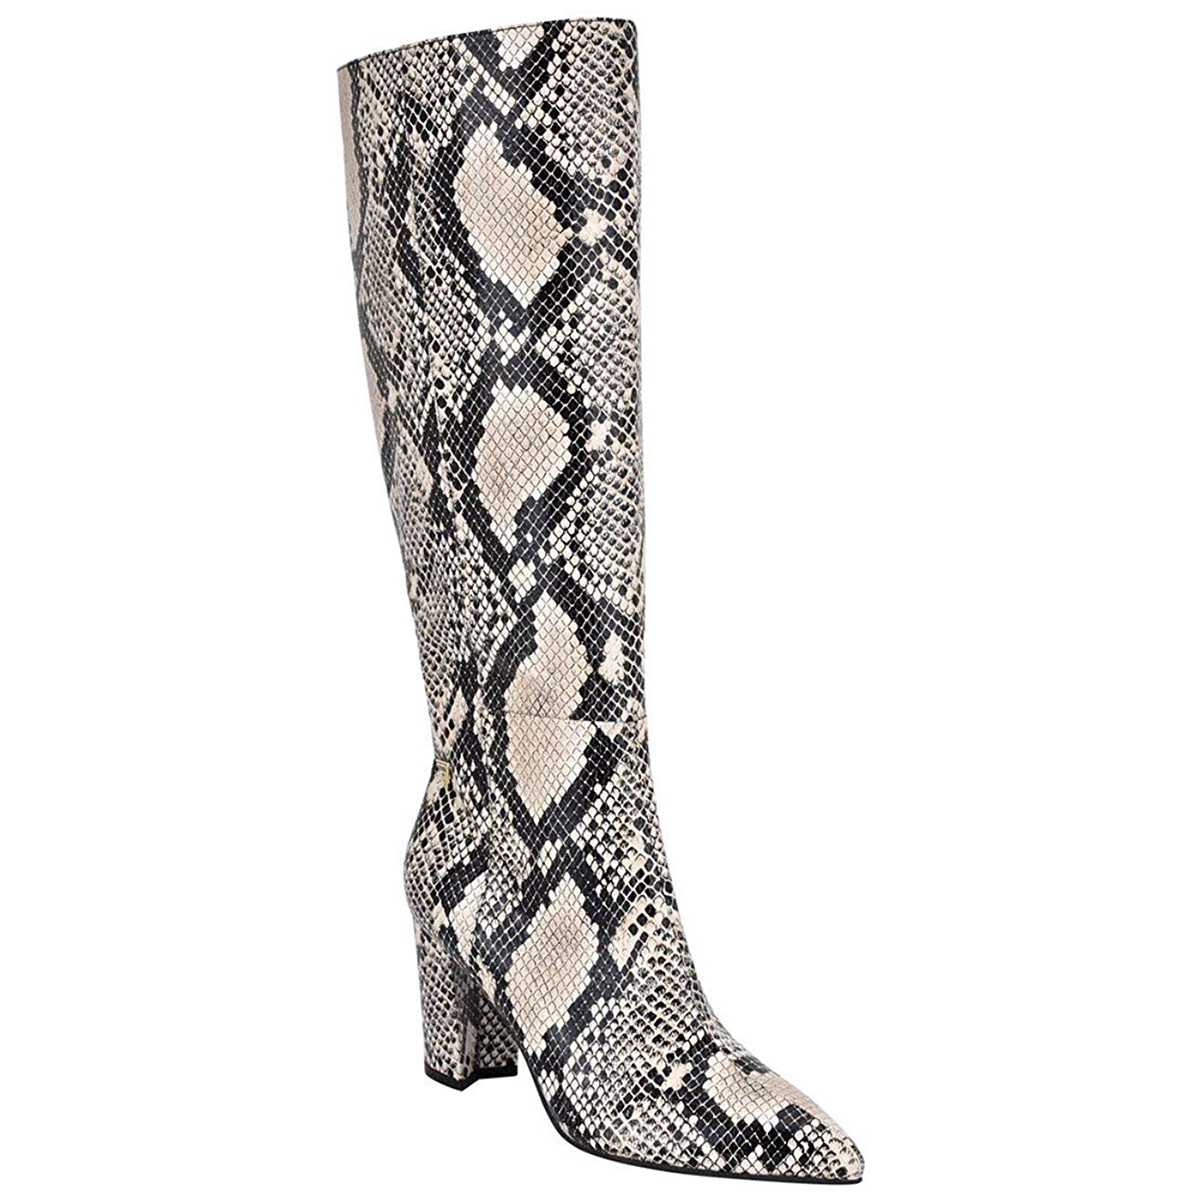 Guess Factory Mariana Snake Print Knee-High Boots